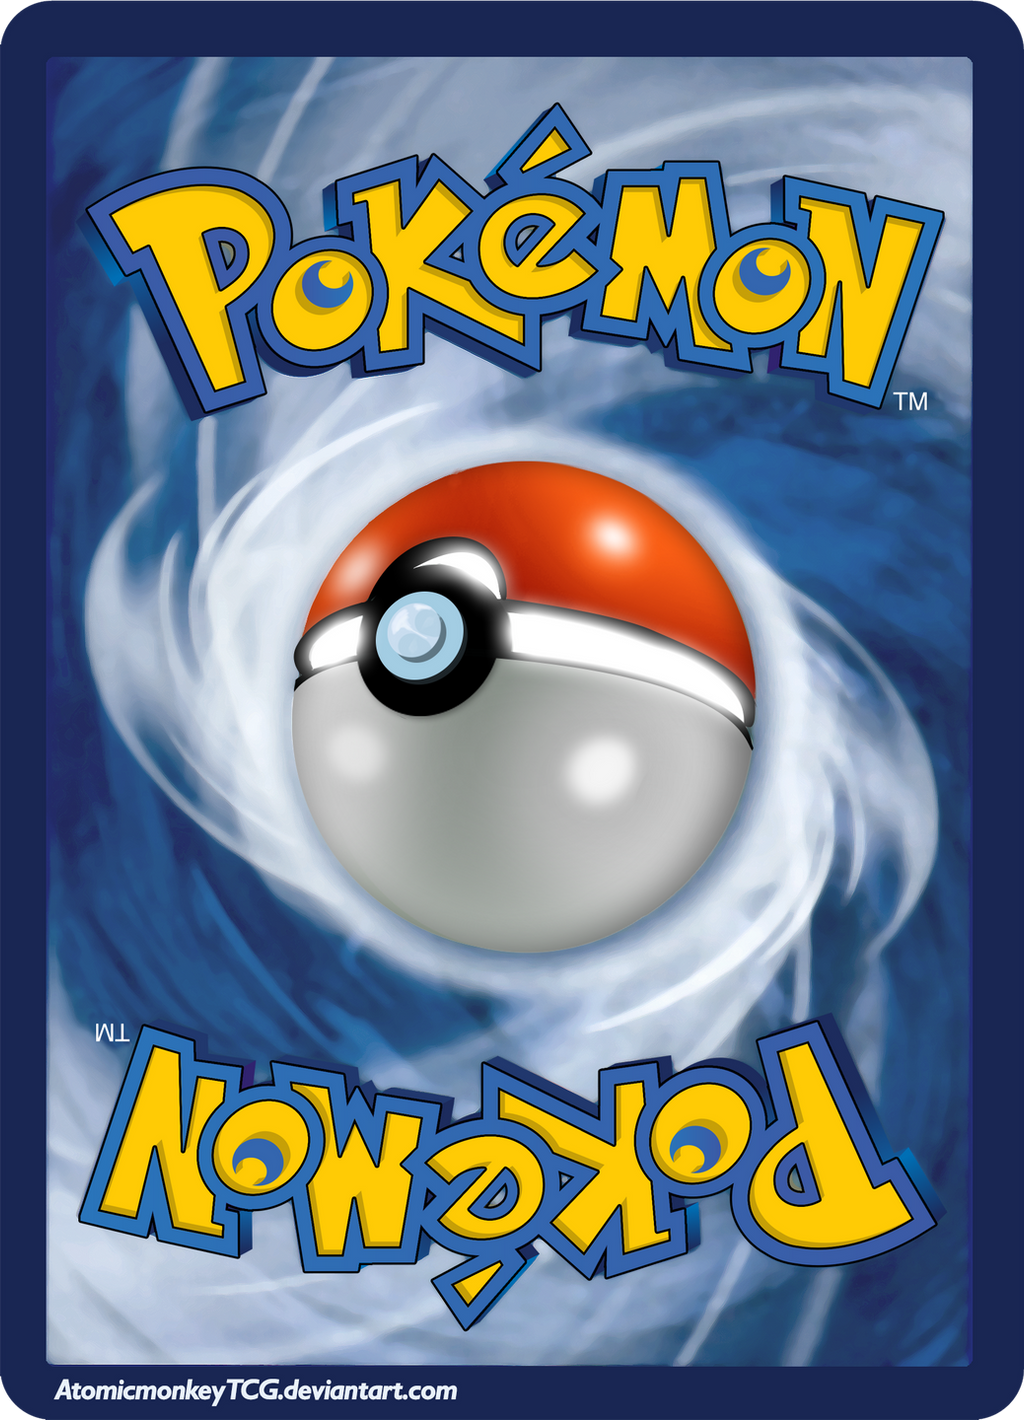 Pokemon Card Backside in High Resolution